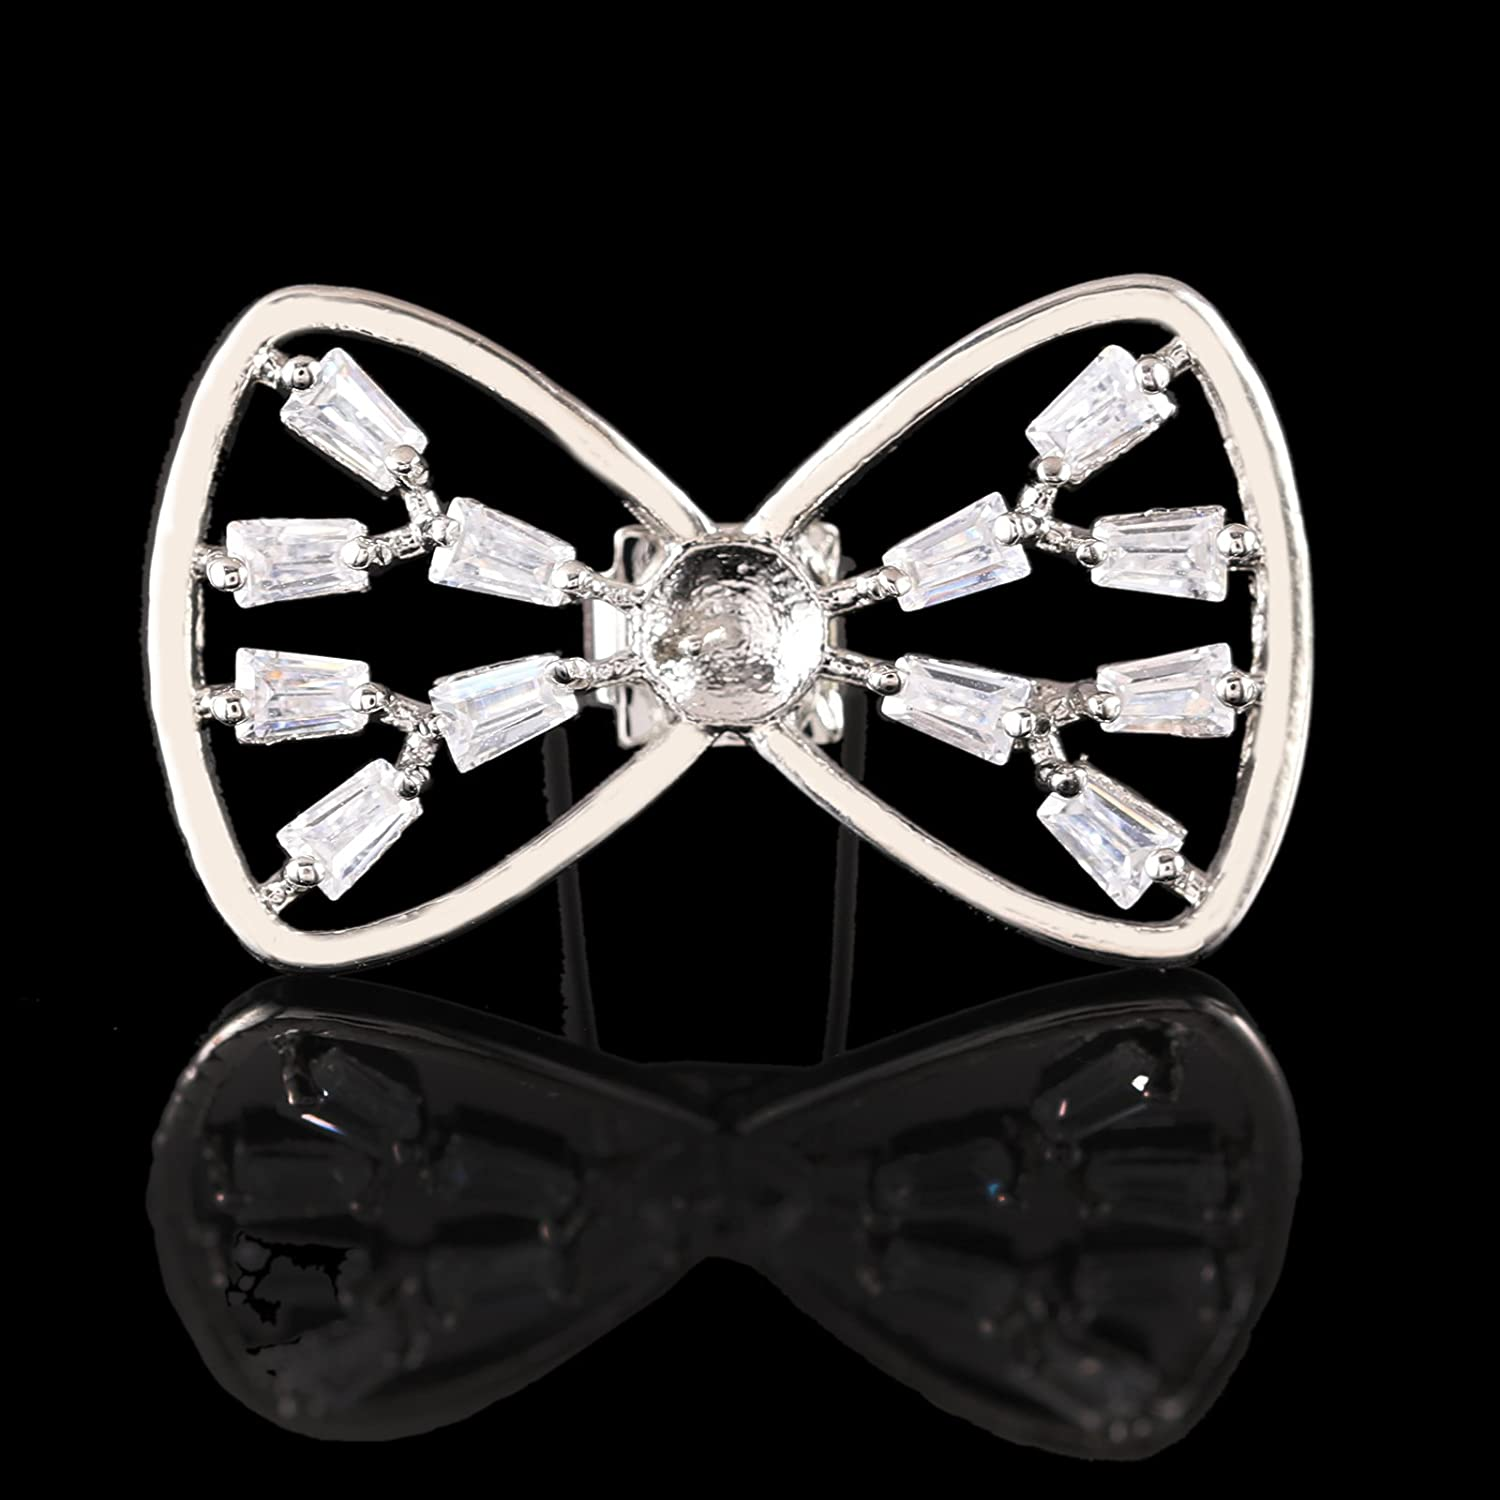 7e1e0572b1141 HerZii Shoe buckle shoes inlaid zircon shoes accessories fashion ladies  clothing luggage accessories (A): Amazon.co.uk: Shoes & Bags